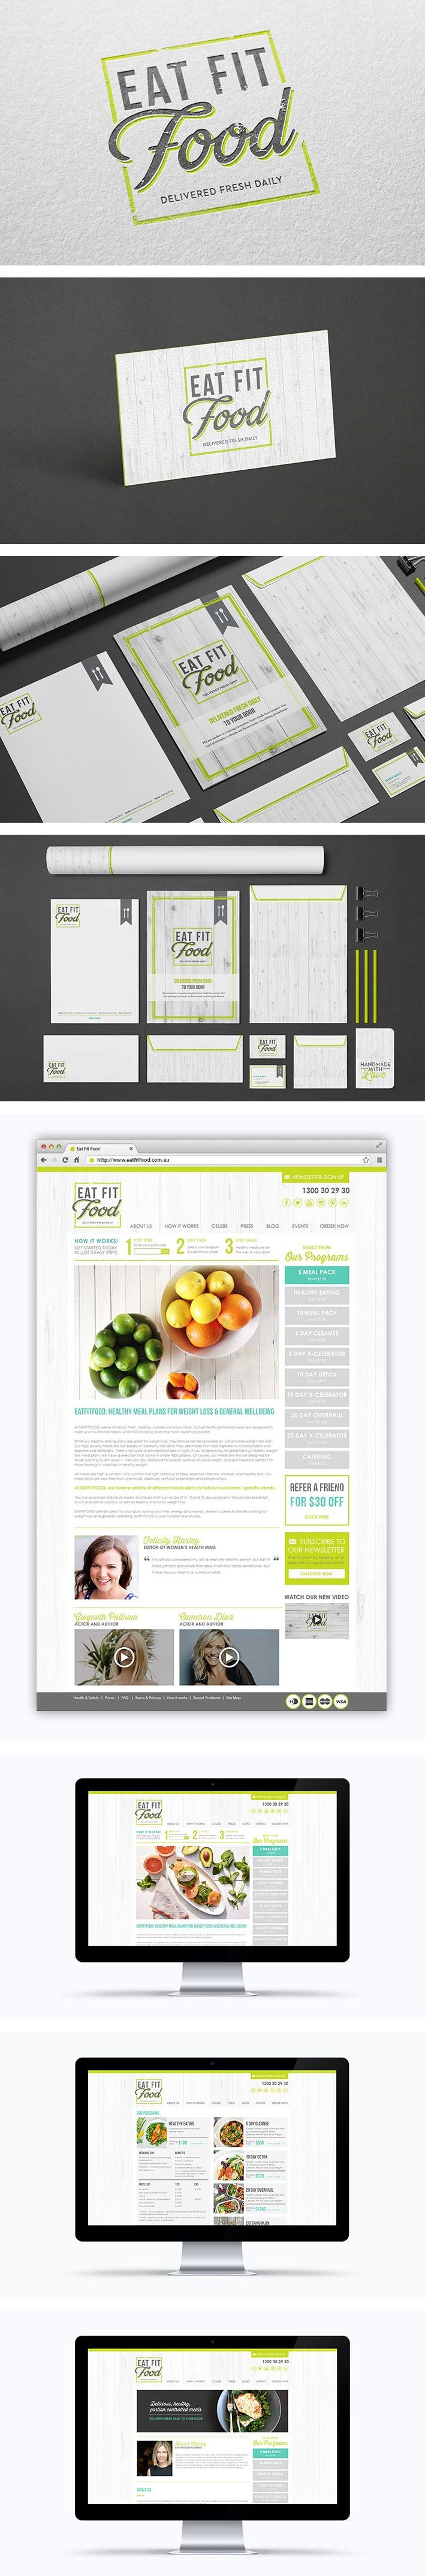 Eat Fit Food branding by Smack Bang Designs I really like this letterhead. I feel like it is elegant and goes well with with all the different formats that they have it in. I also really like the color choices that they made.